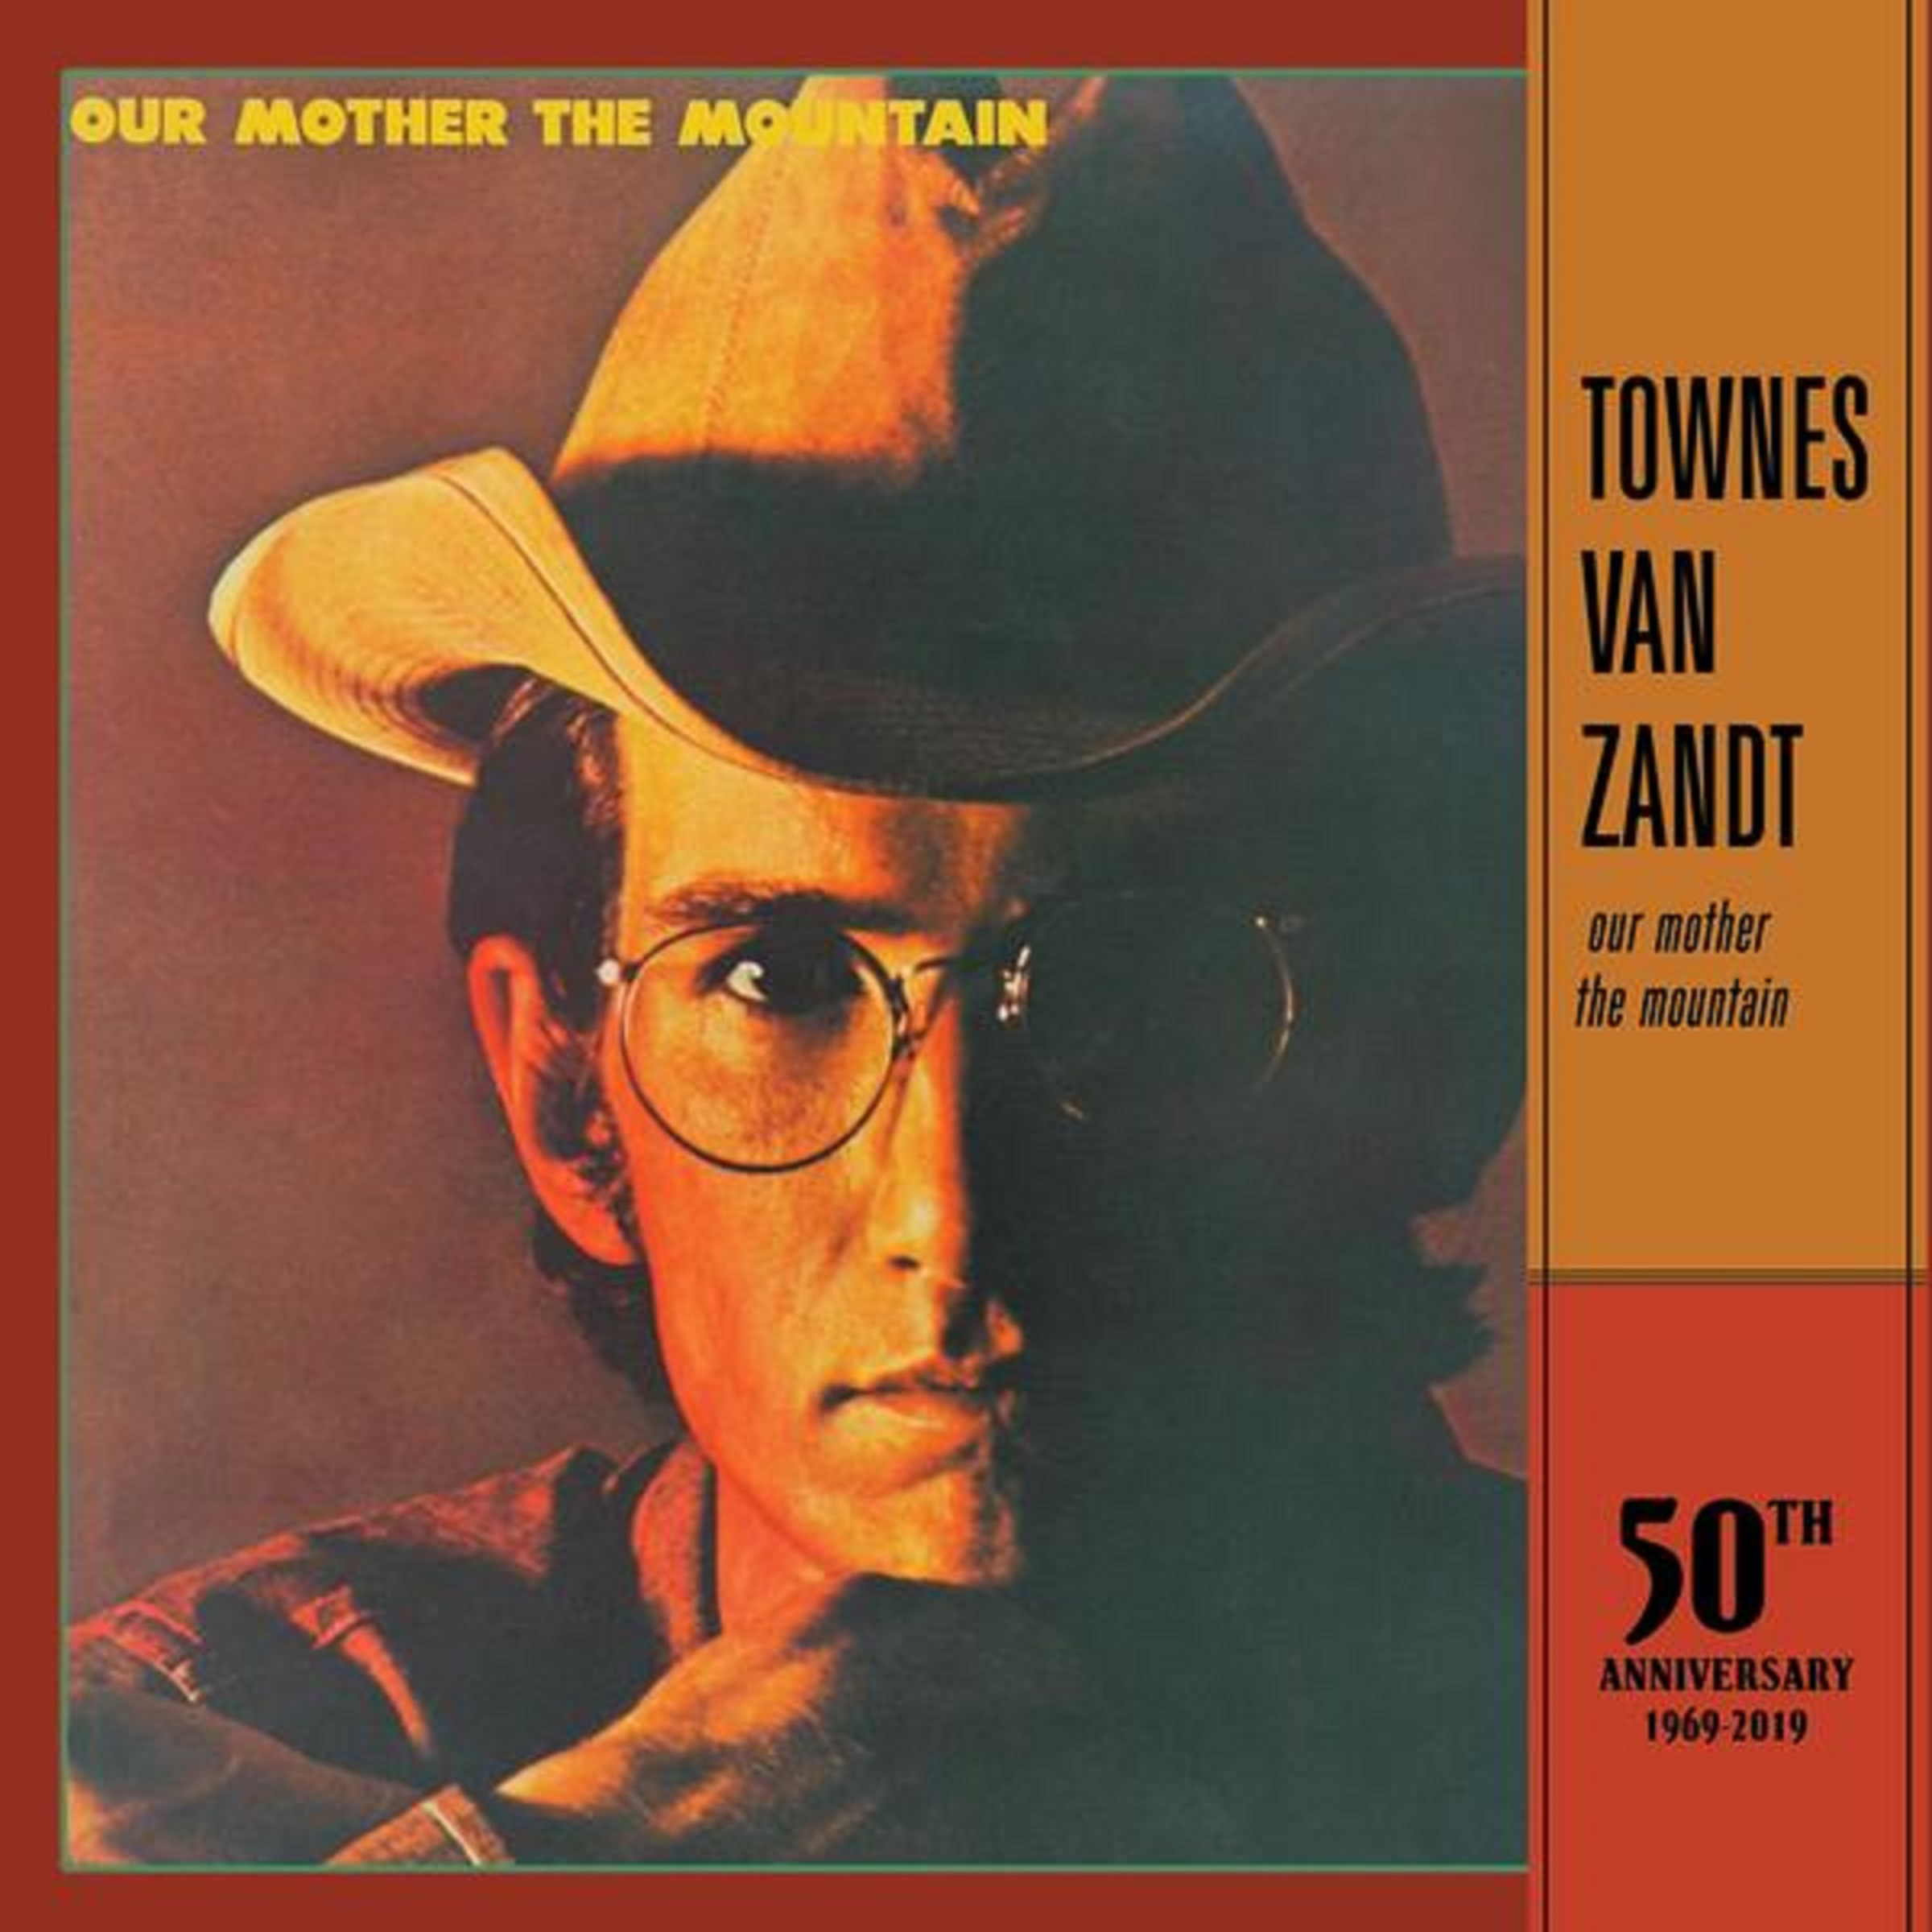 "Fat Possum Records Announce 50th Anniversary Reissues of Townes Van Zandt's ""Our Mother The Mountain"" and ""Townes Van Zandt"" January 10th, 2020"